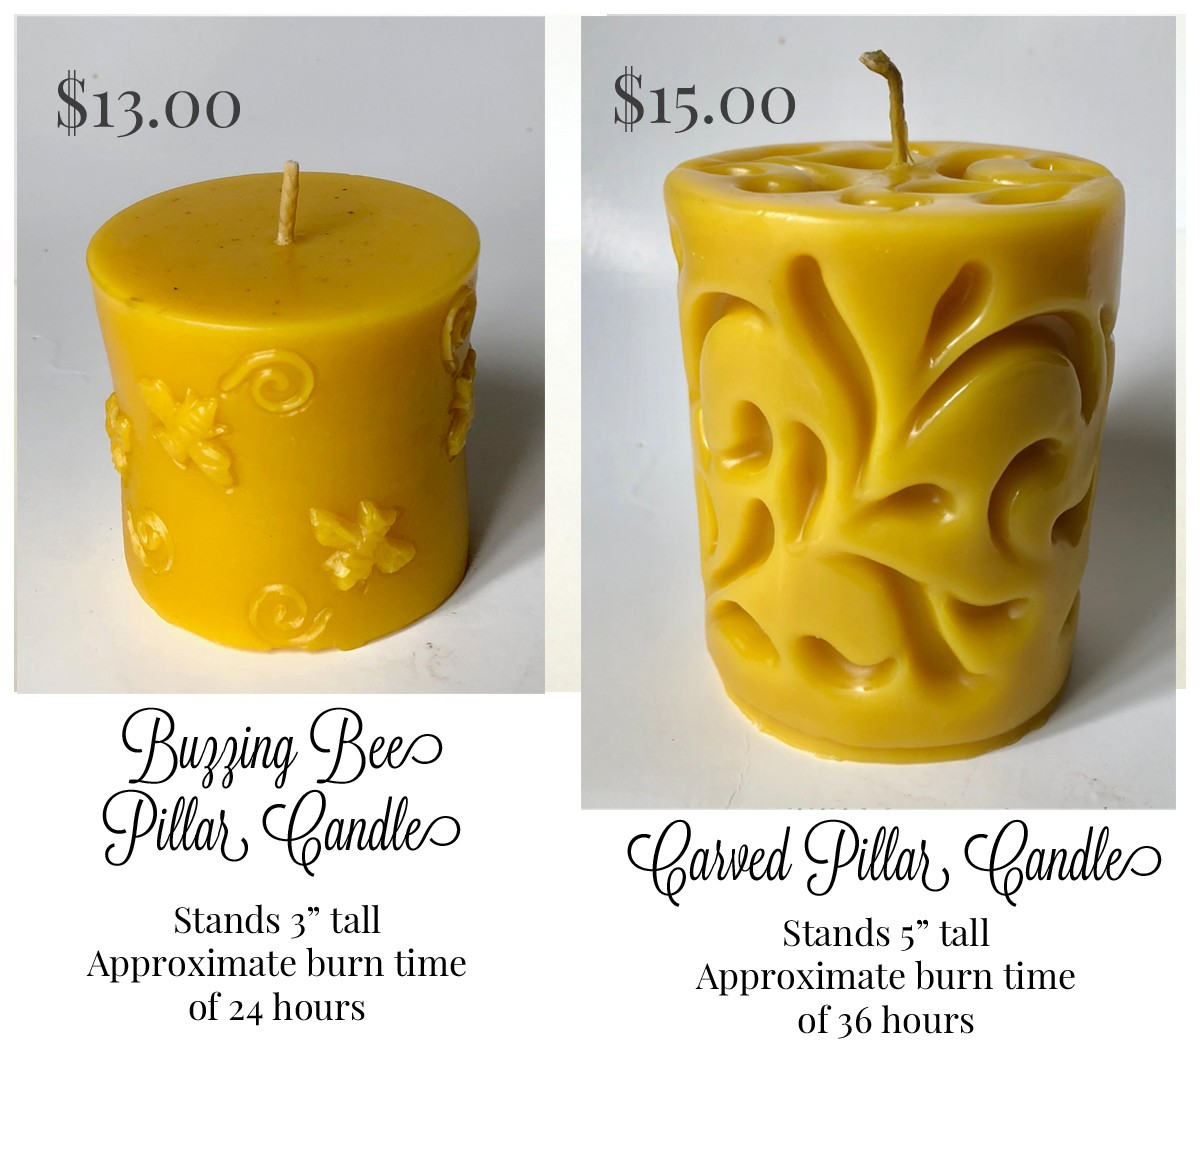 Taking Orders for Beeswax Candles